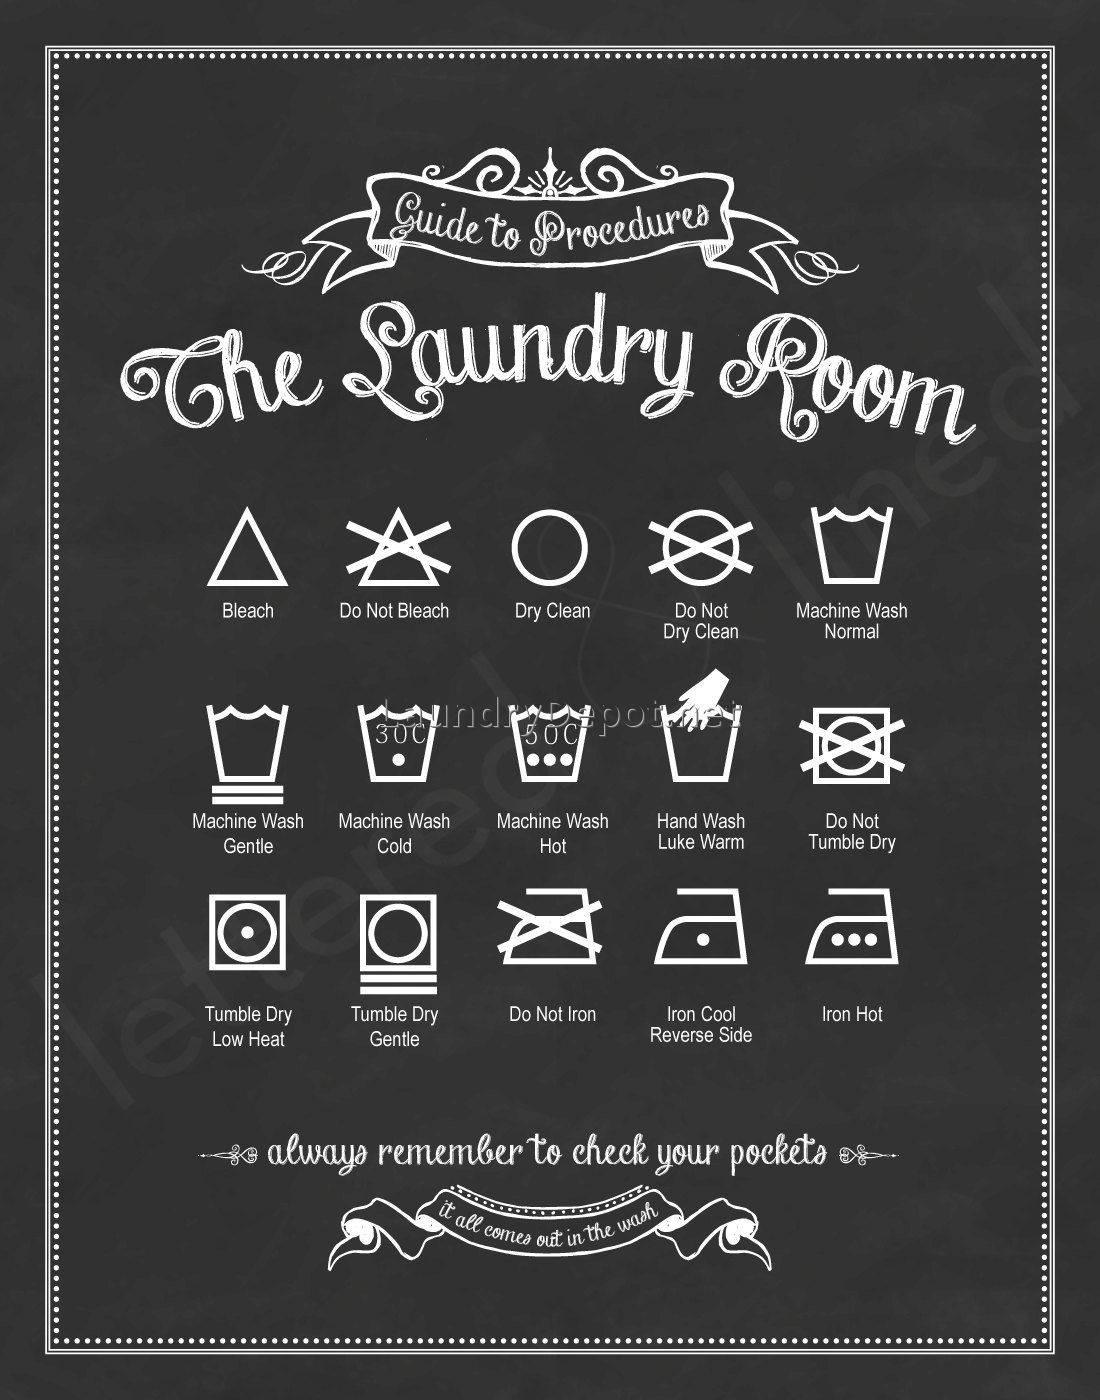 Laundry Room Wall Art Decor 5 | Best Laundry Room Ideas Decor Throughout Best And Newest Laundry Room Wall Art Decors (View 14 of 25)